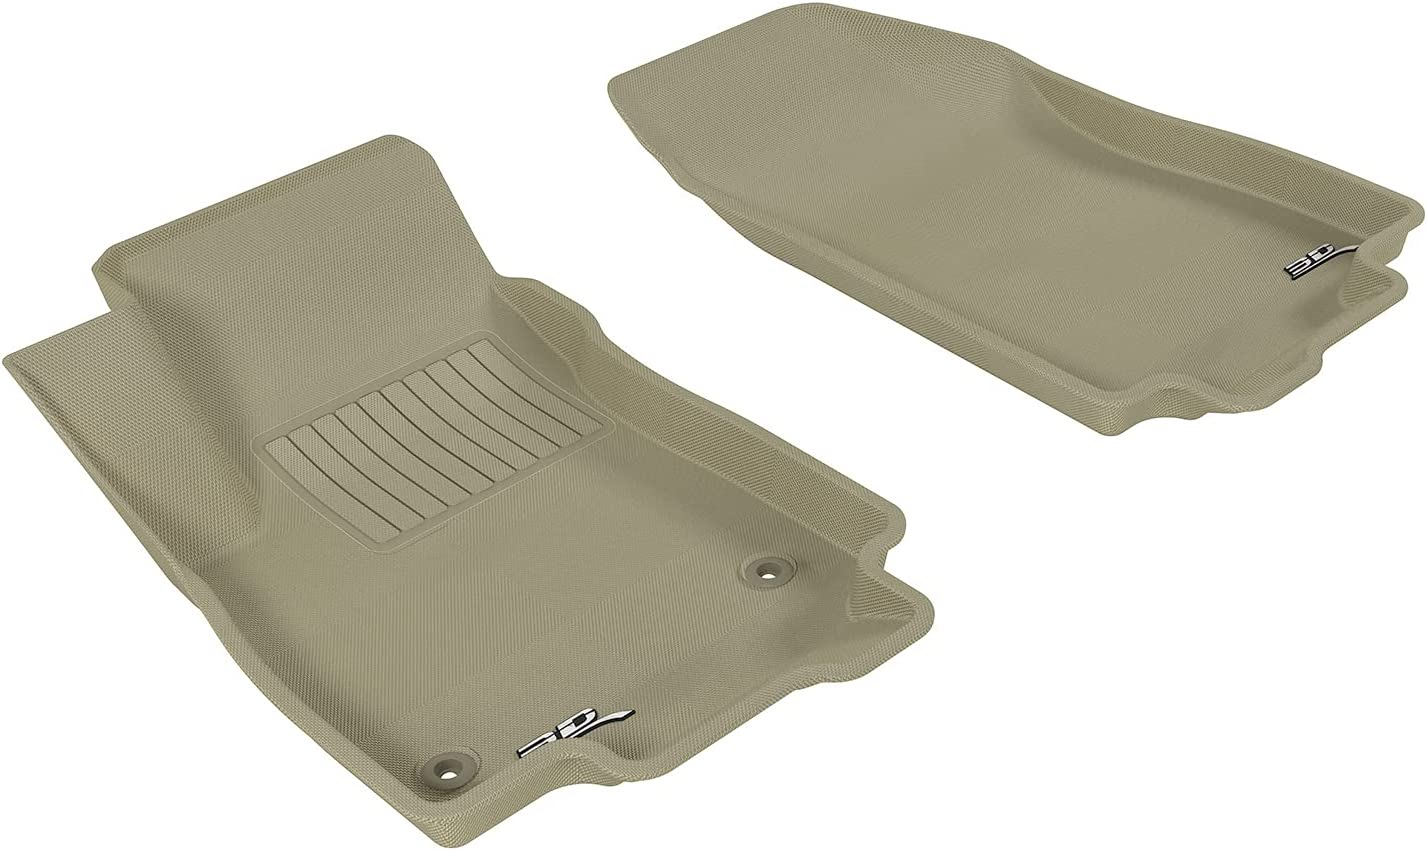 3D online shopping MAXpider All-Weather Floor Mats for Surprise price Buick Encore 2013-2020